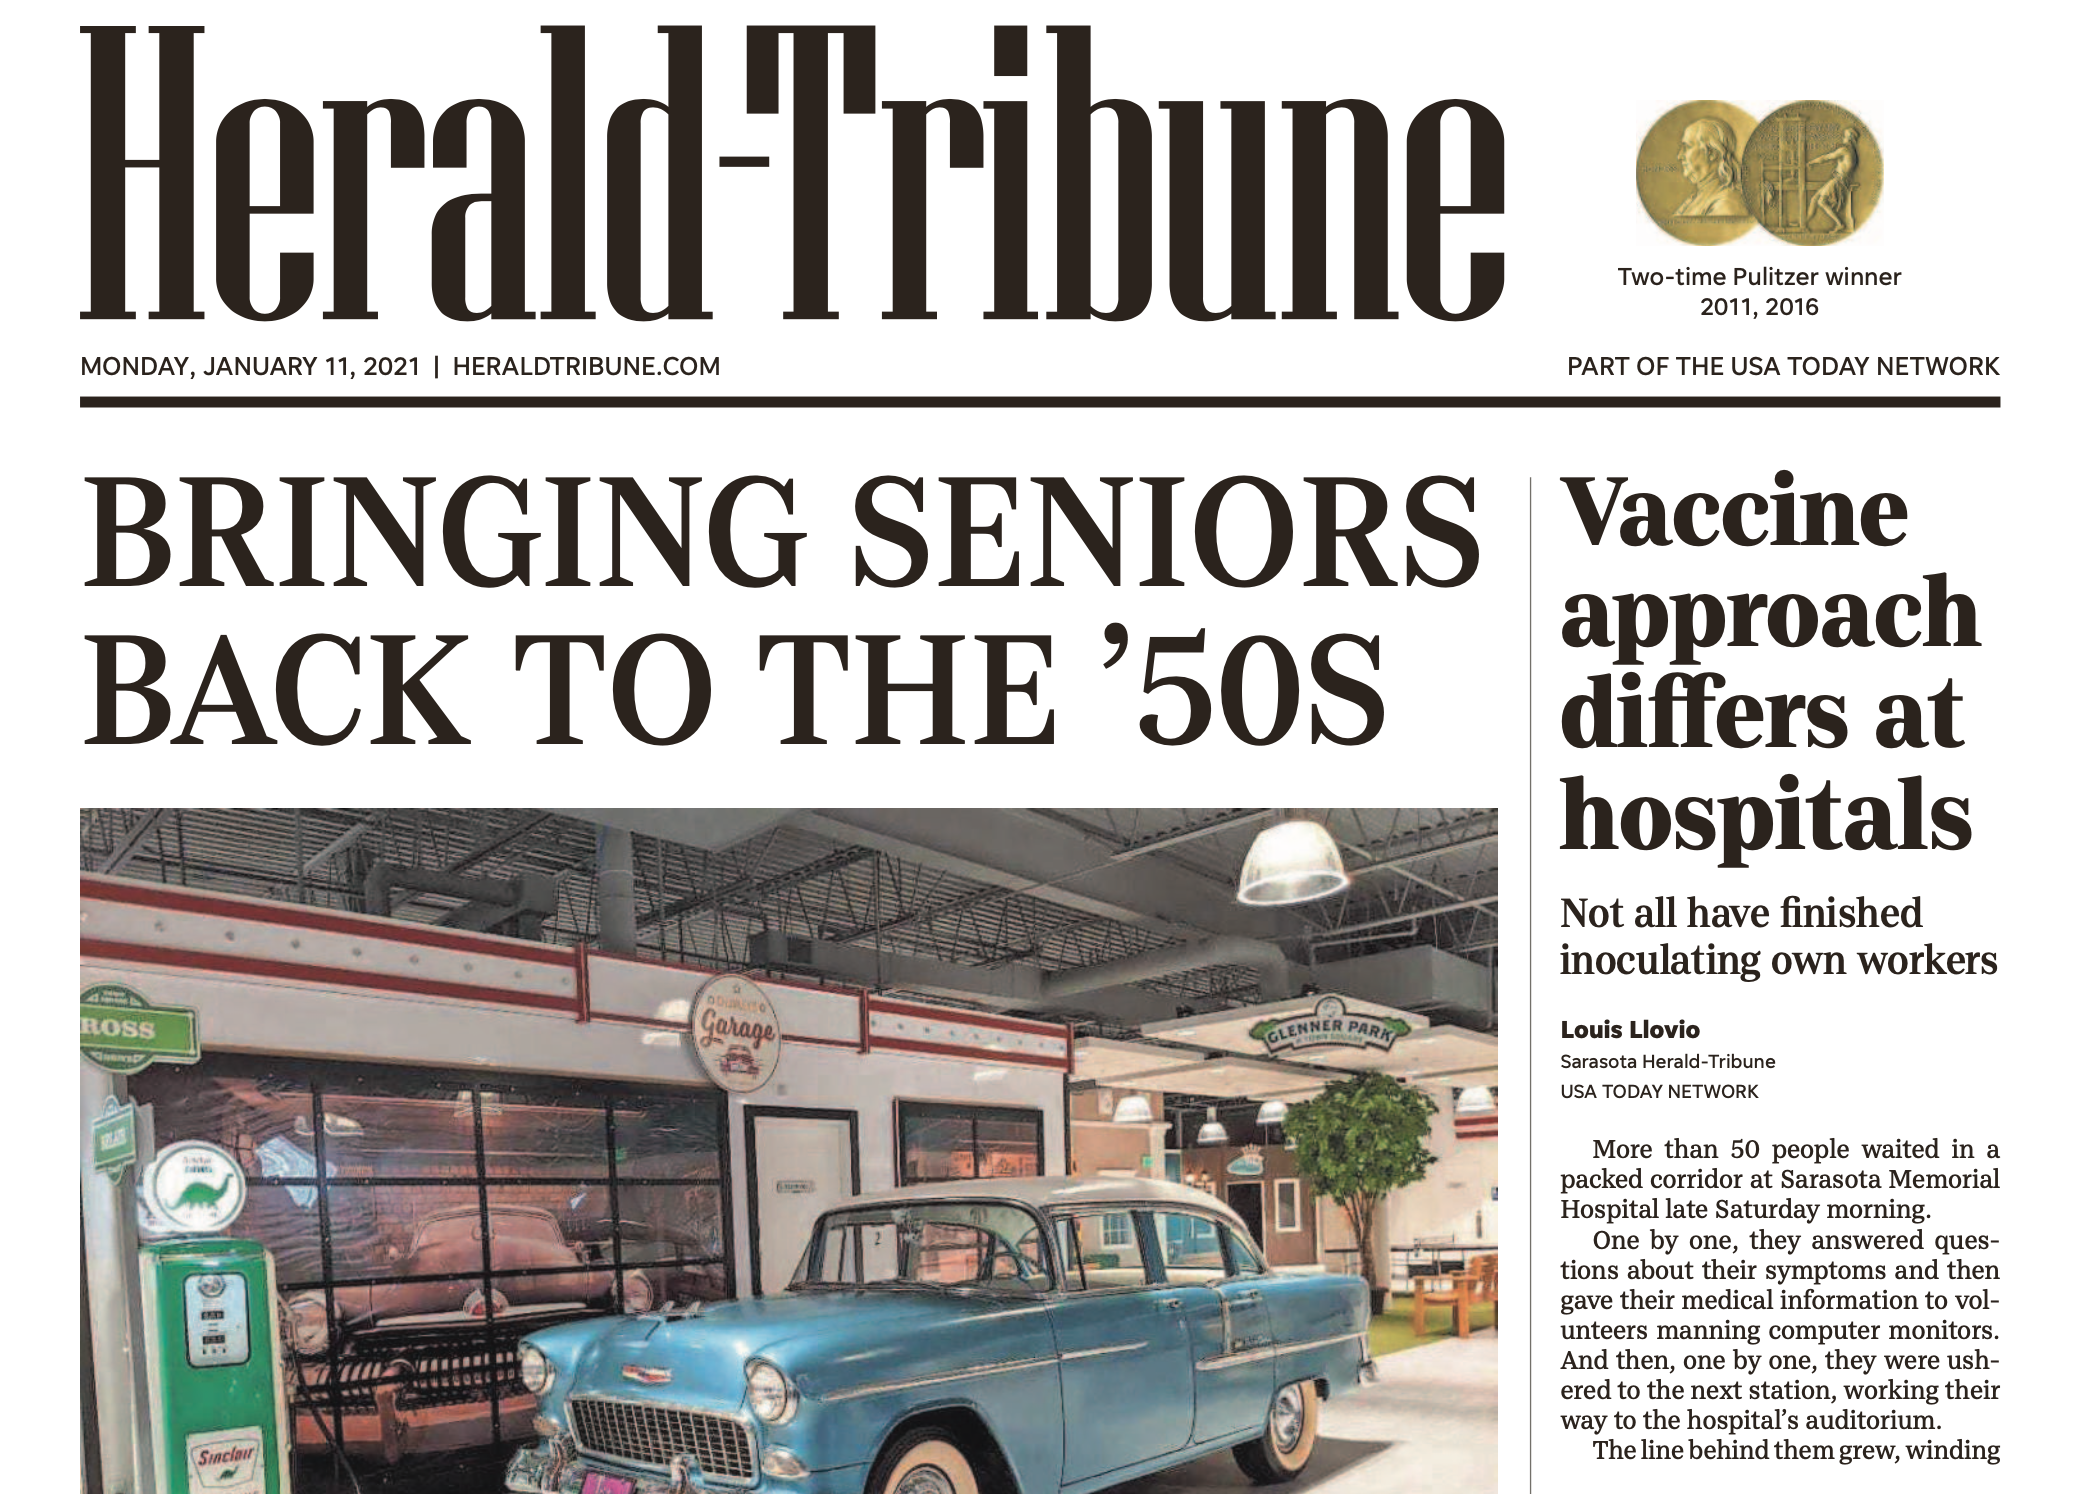 Front-page story in Herald-Tribune